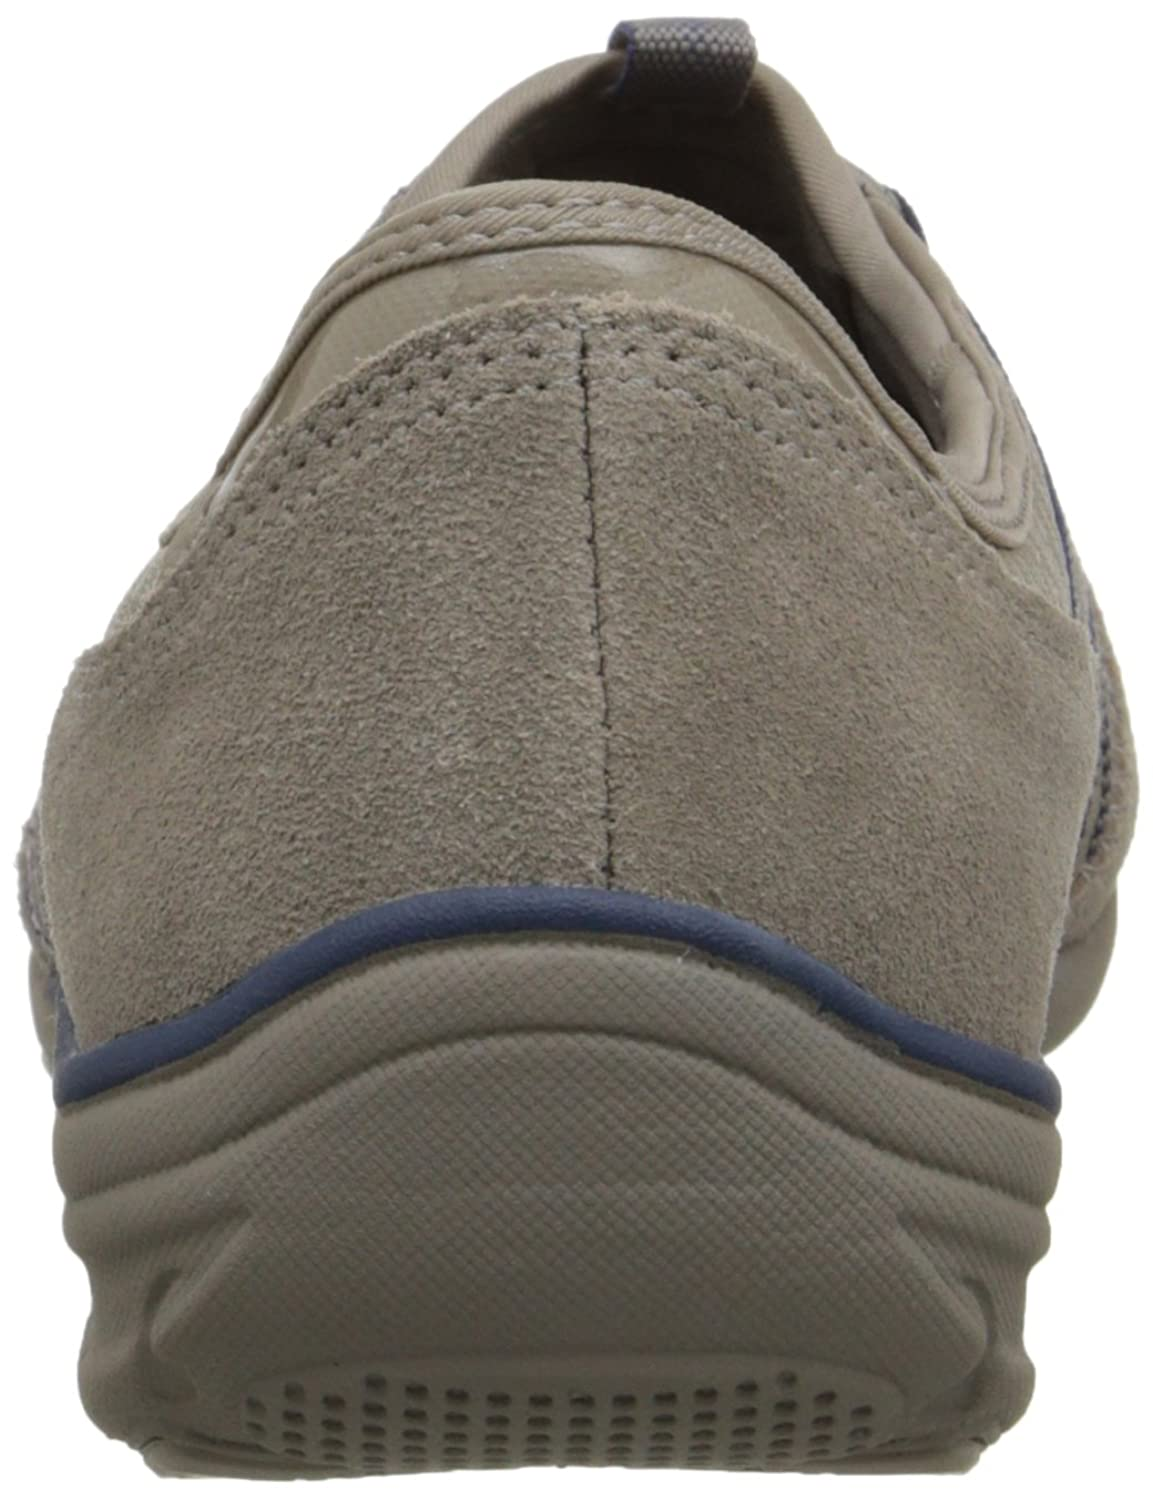 Conversations - Holding ACES, Womens Low-Top Sneakers Skechers